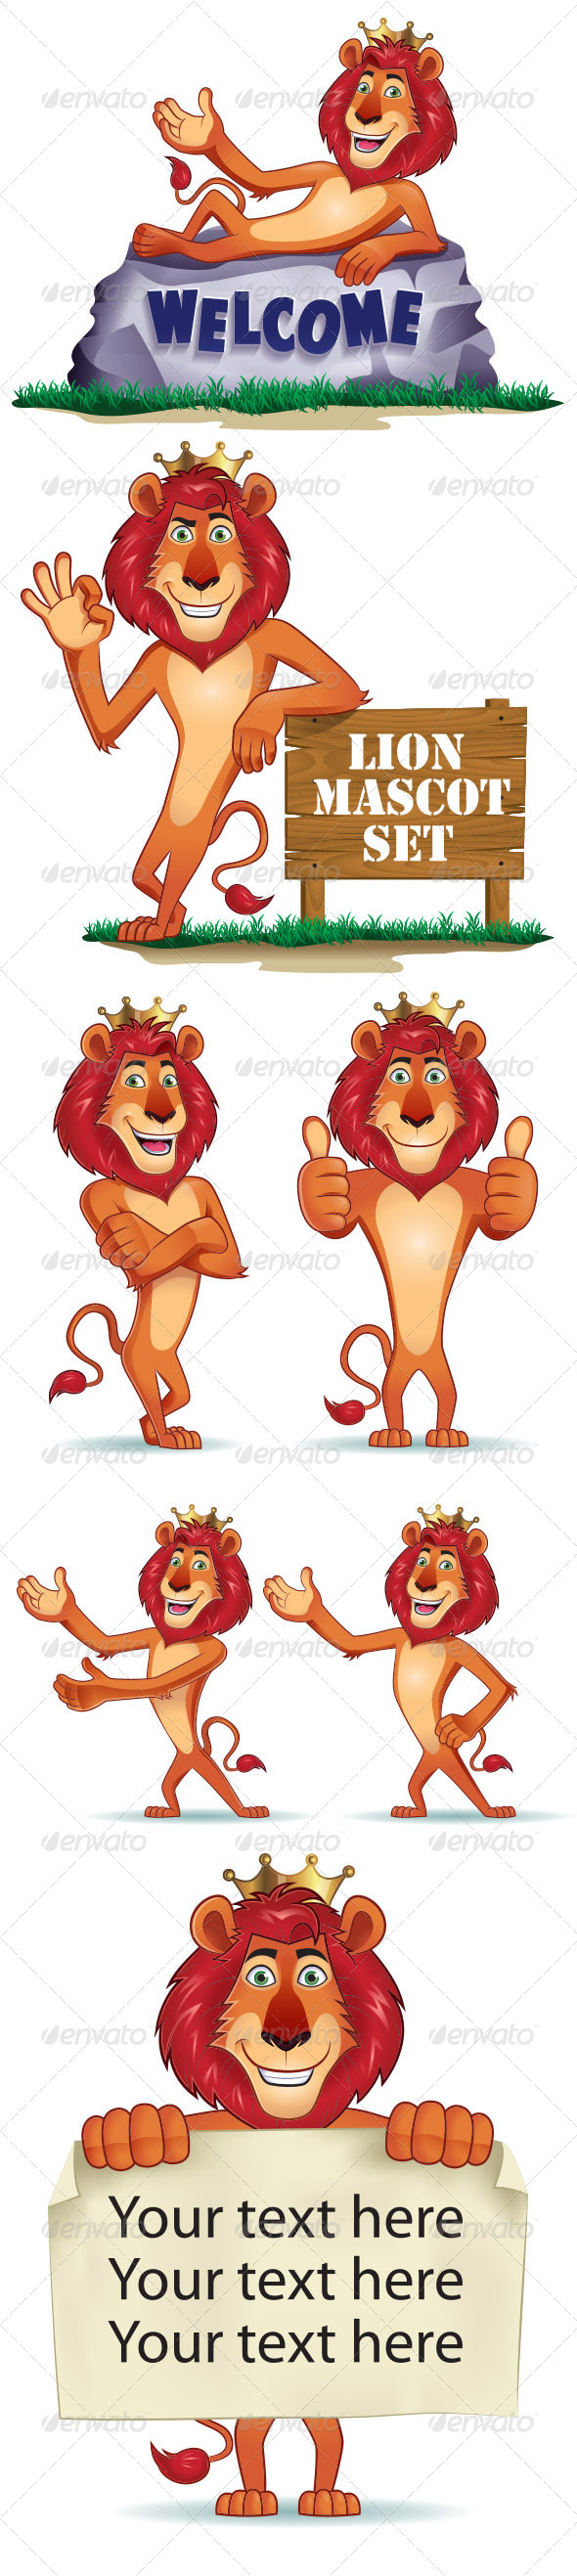 GraphicRiver Lion Mascot Set 5725409